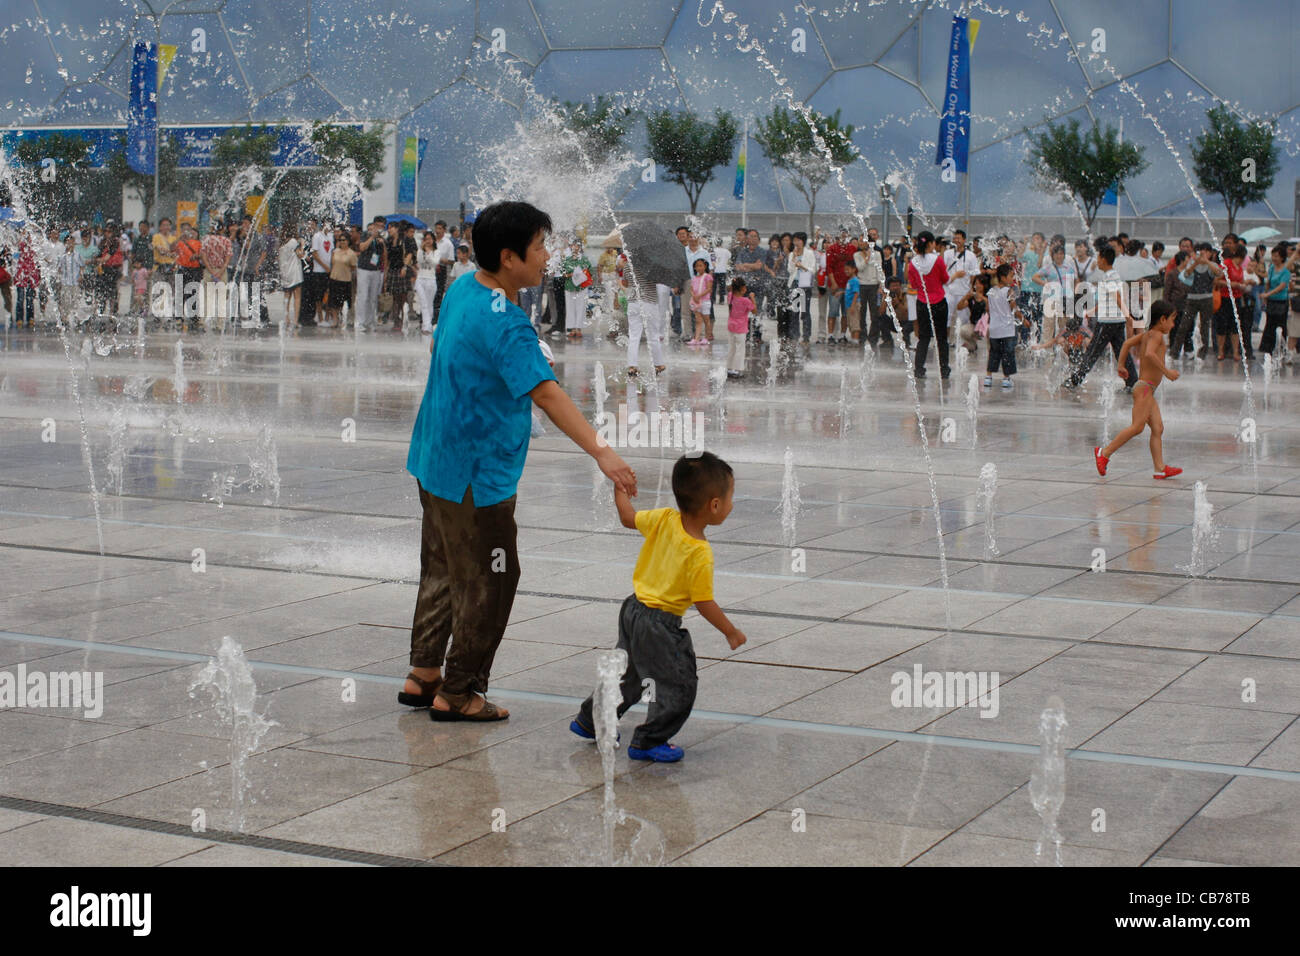 Beijing, China: Chinese couples, families and kids enjoy the vast plazas outside the National Stadium during Paralympics - Stock Image